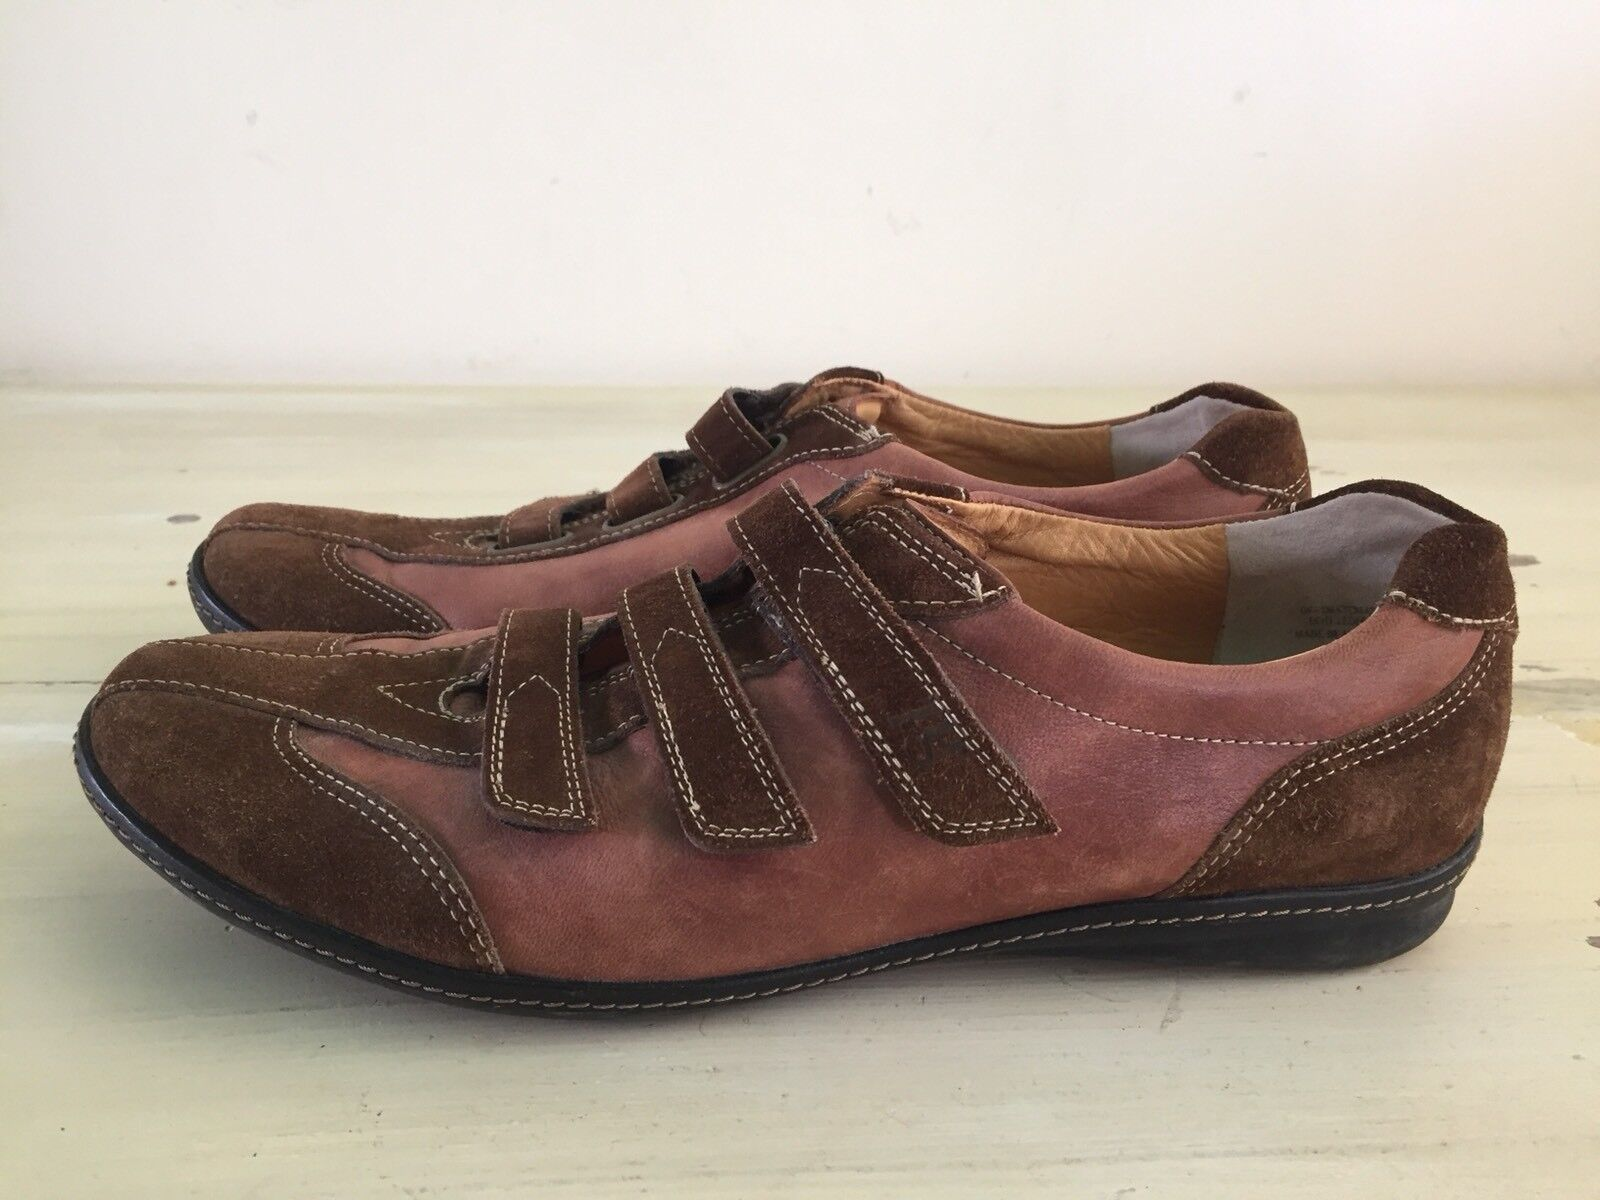 PAUL GREEN - Munchen Brown Suede Leather Casual Sneakers shoes, Womens 8